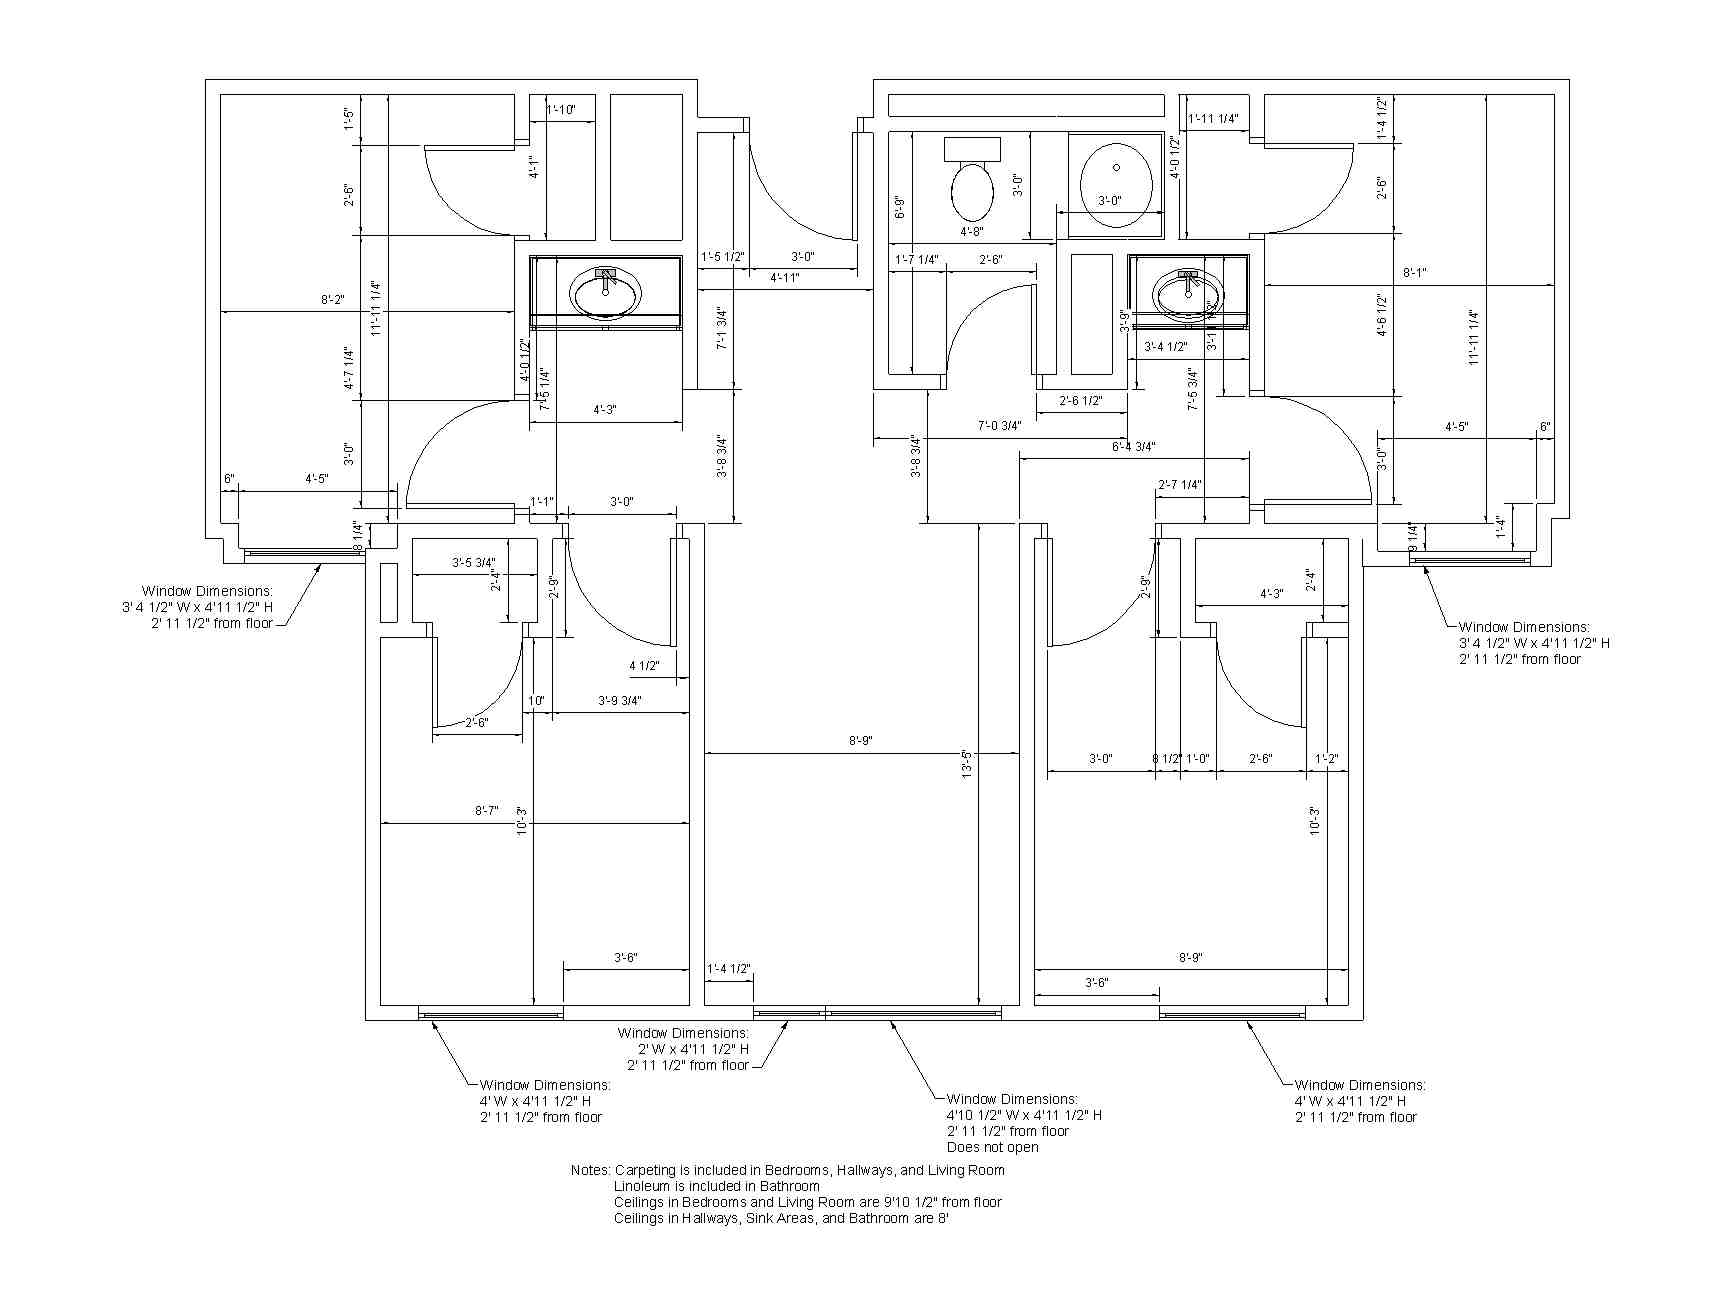 Southwest Hall Dimensions | Residences